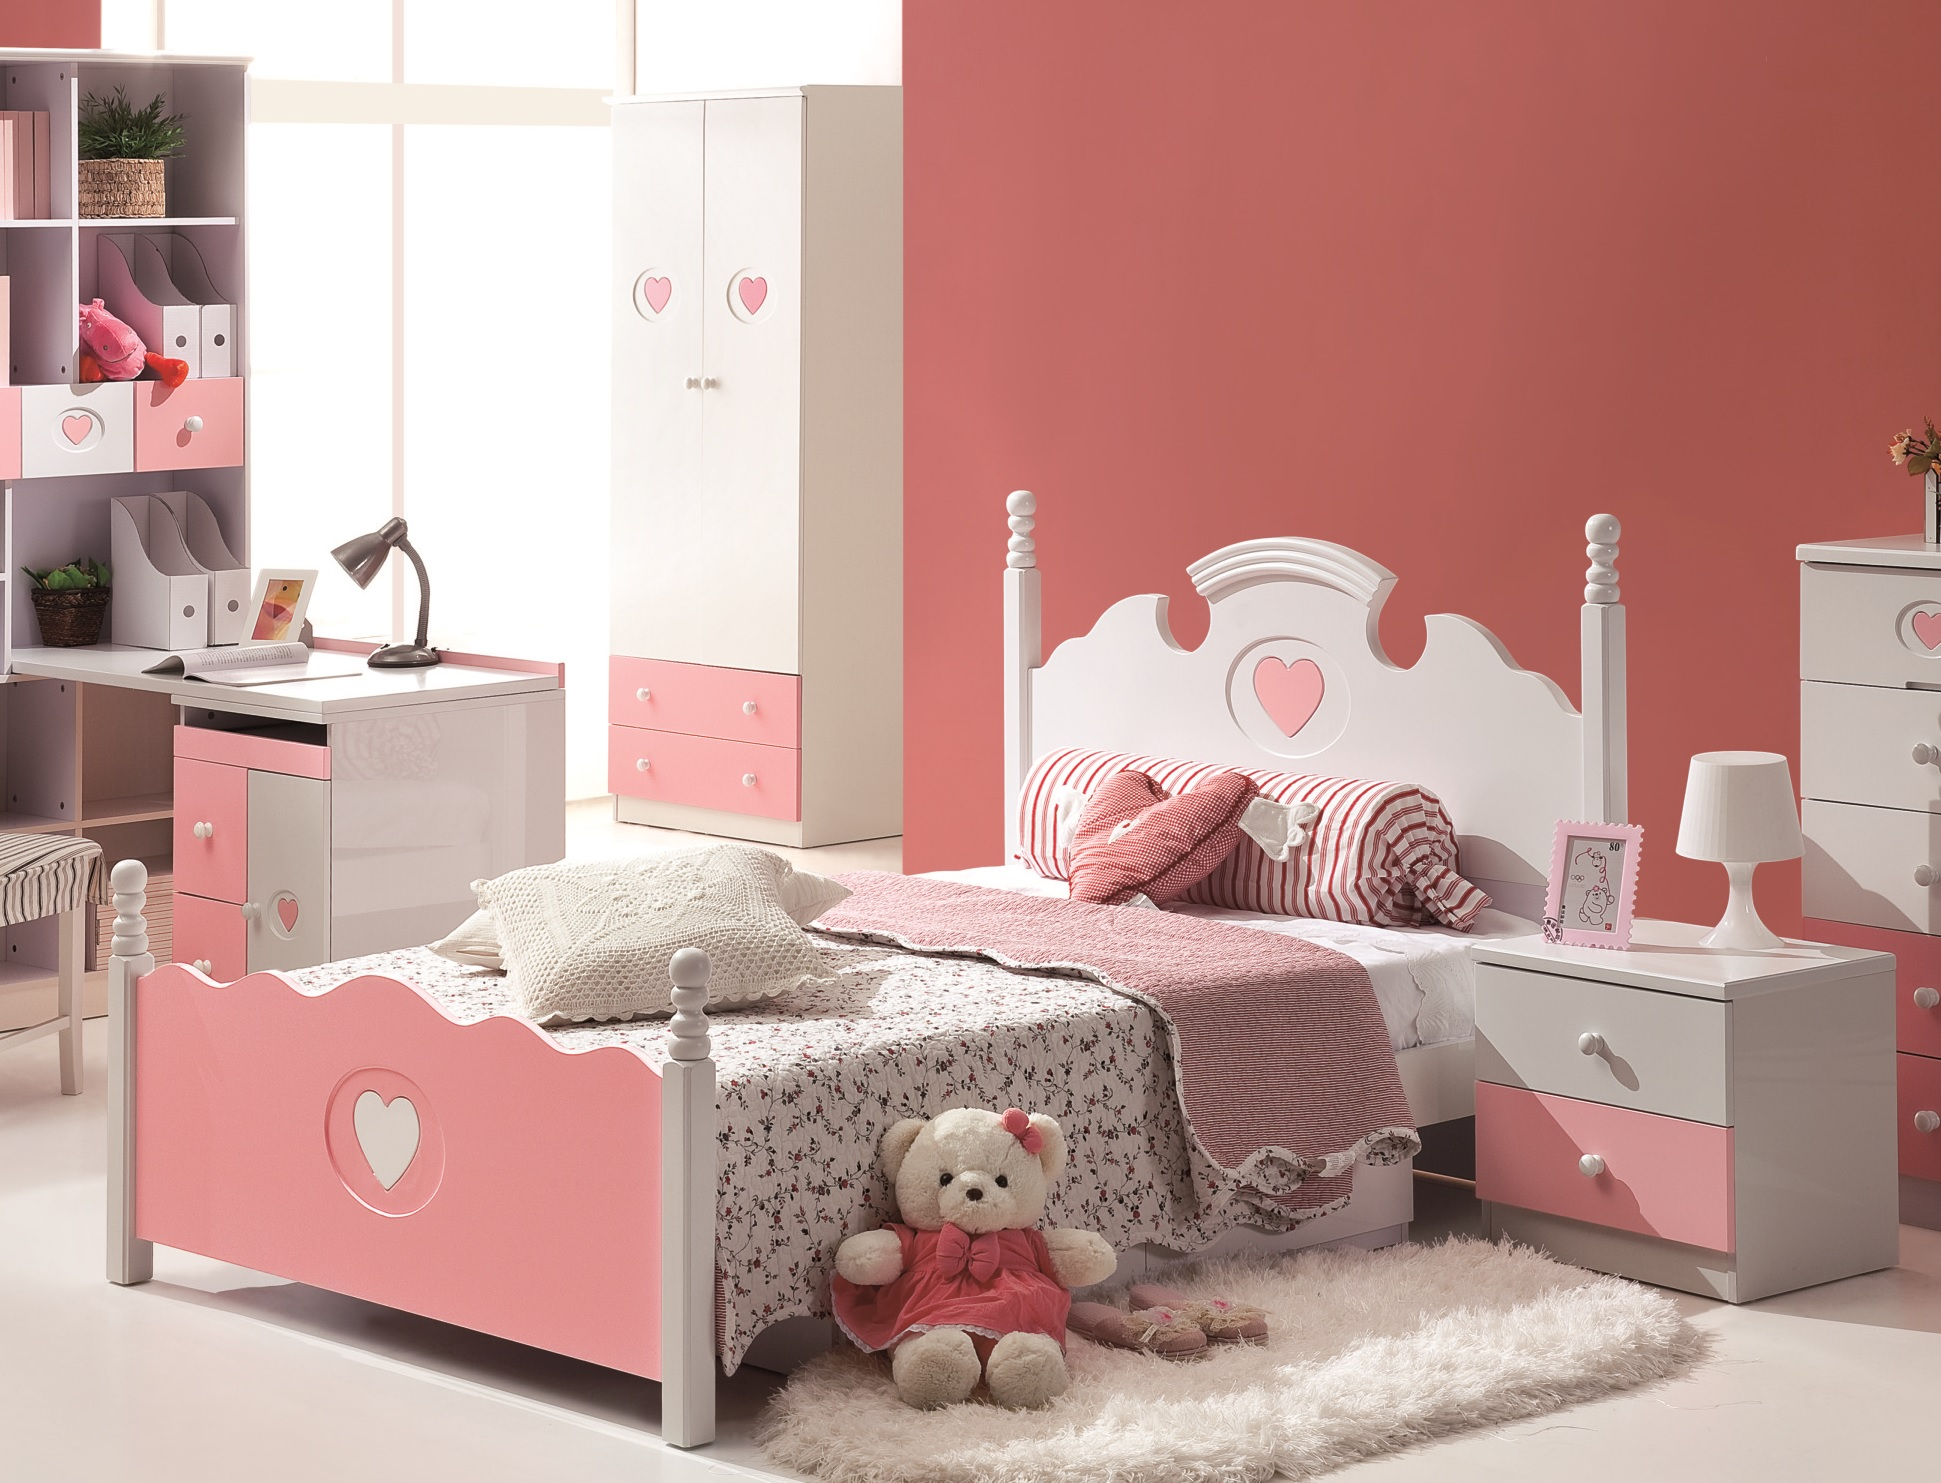 Cheap Kids Beds Online Buy Kids Beds Online At Kids Kouch India Beds For Kids